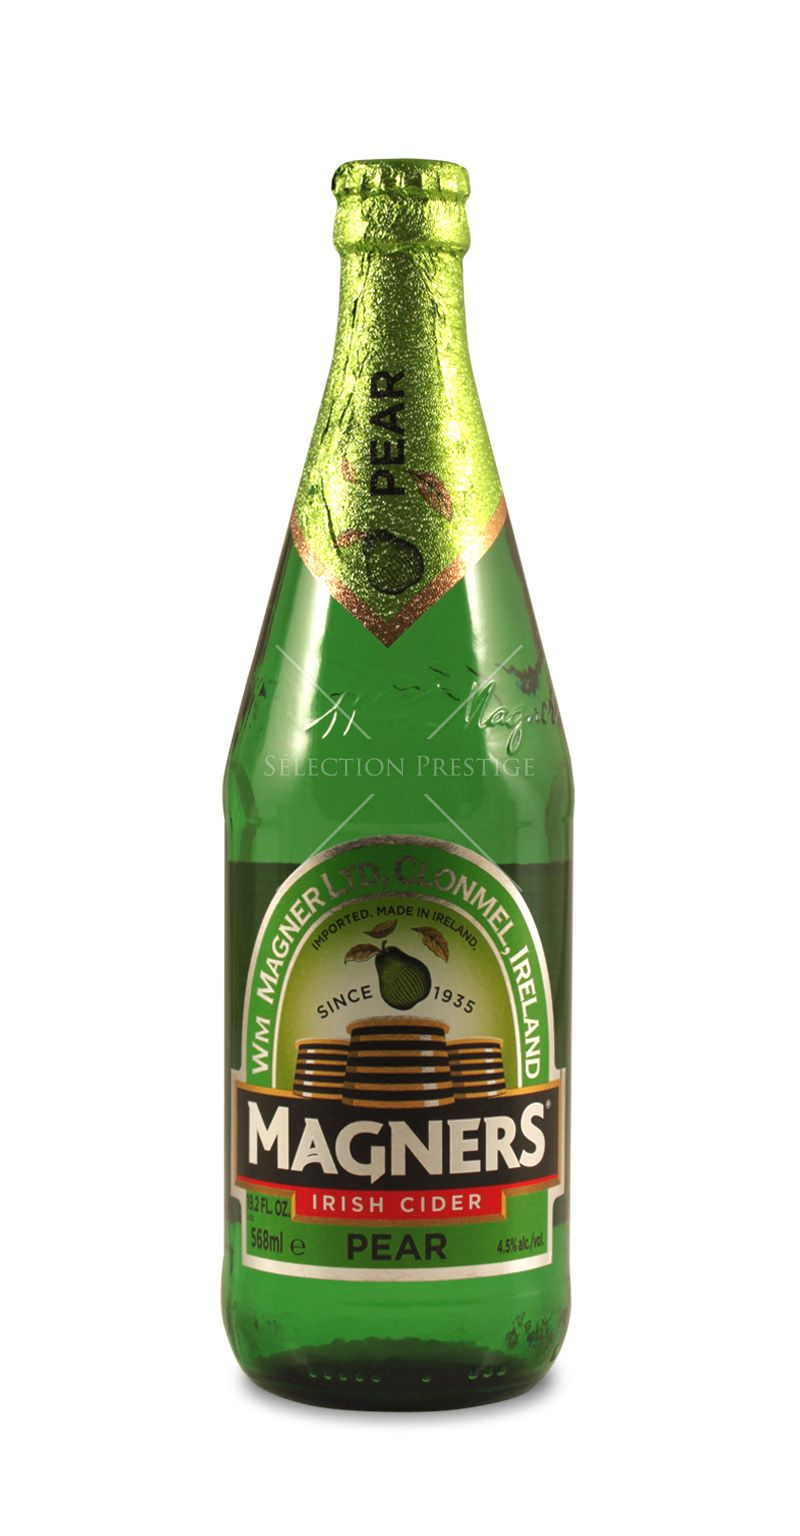 Cider Getränk Magners Irish Cider Pear 0,568l (4,5% Vol.) - Magners